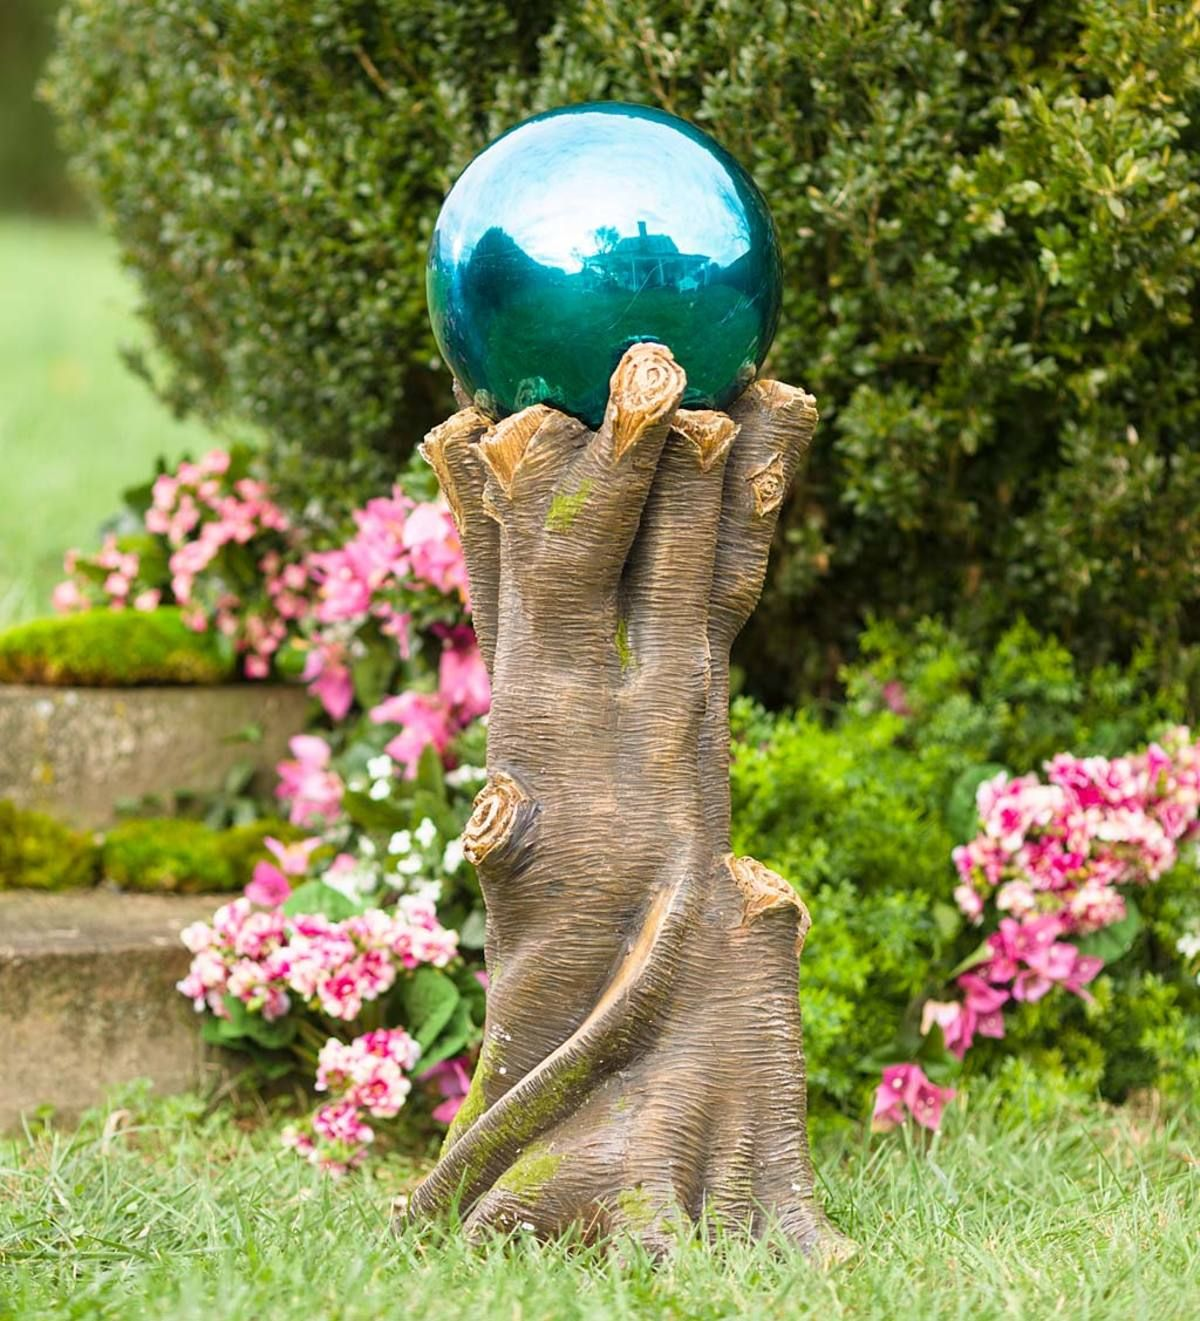 Tree Stump Gazing Ball Stand Adds Lifelike Charm To Your Garden If You Re Stumped About How To Take Your Garden Dec Garden Stand Unique Garden Art Gazing Ball